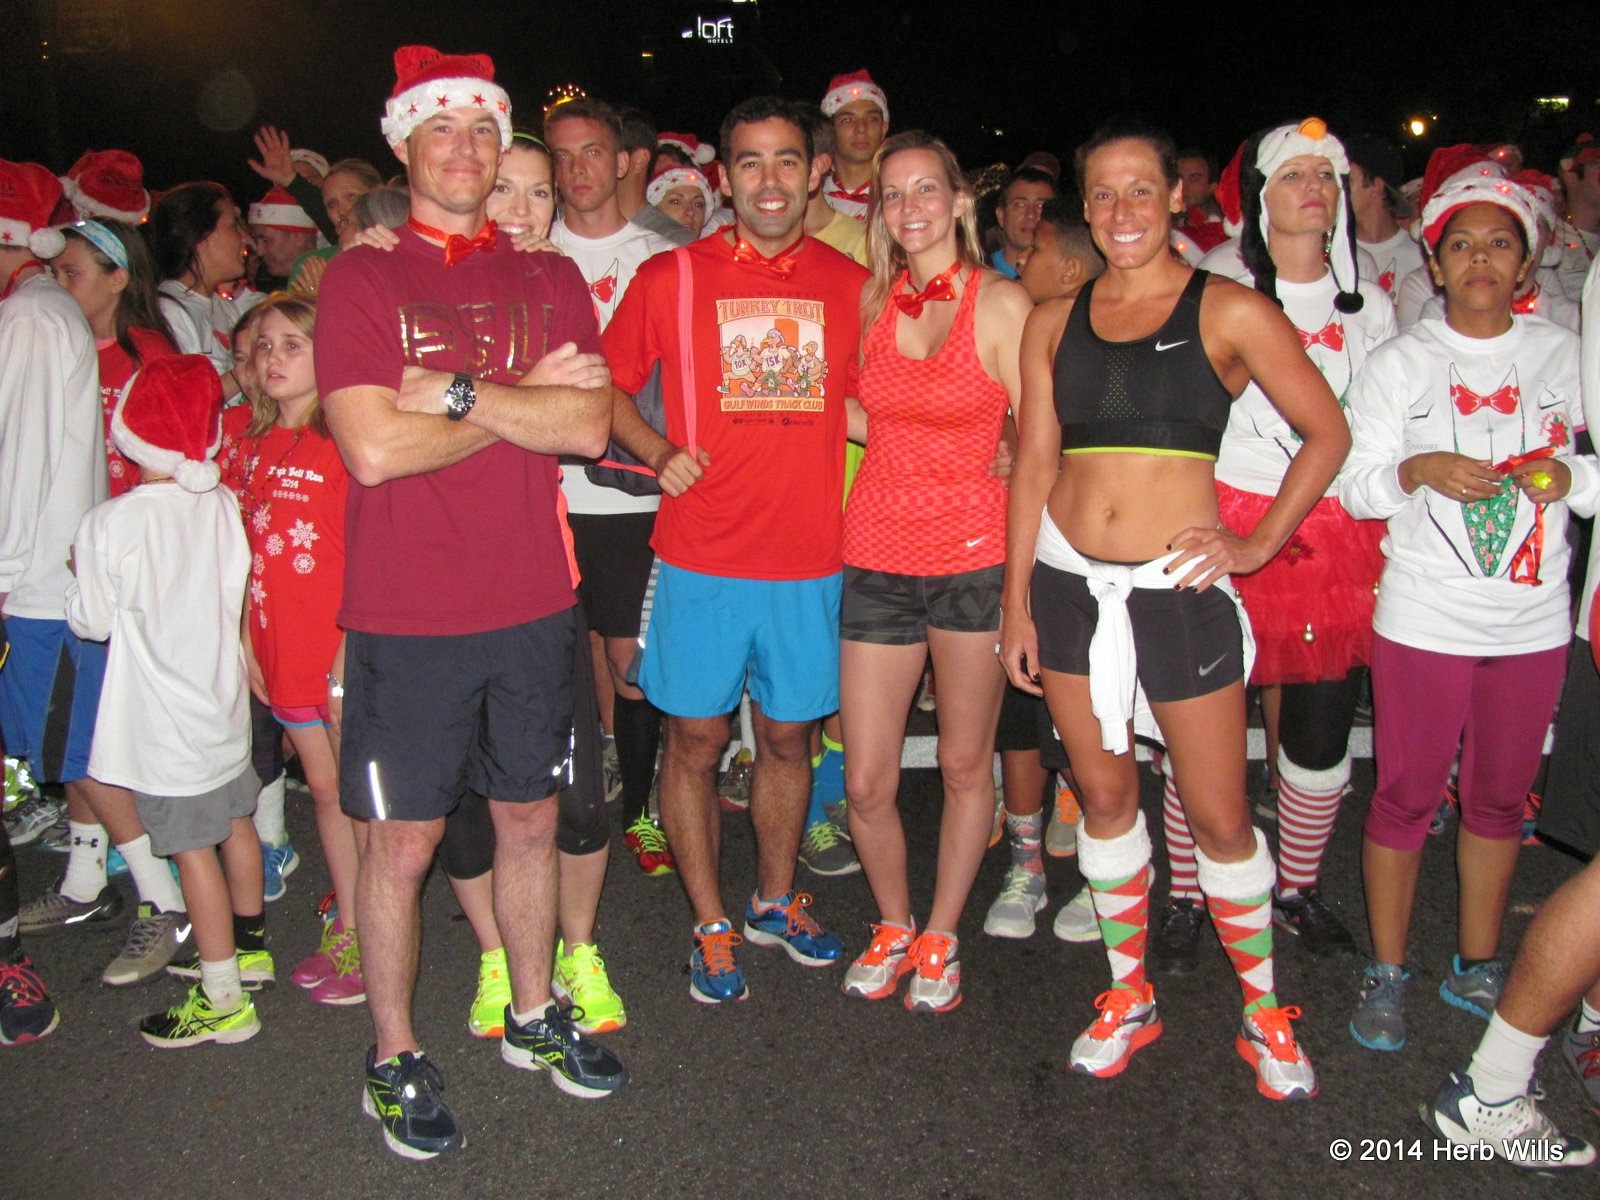 Tallahassee's 2014 Jingle Bell Run